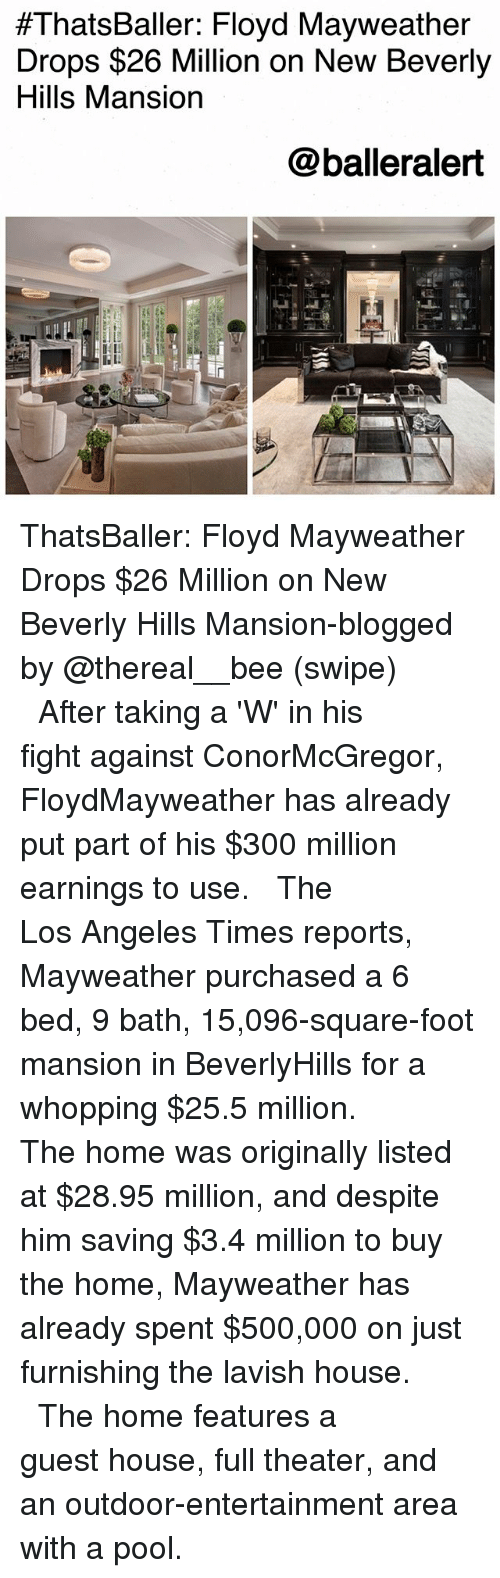 Floyd Mayweather, Mayweather, and Memes:  #ThatsBaller: Floyd Mayweather  Drops $26 Million on New Beverly  Hills Mansion  @balleralert ThatsBaller: Floyd Mayweather Drops $26 Million on New Beverly Hills Mansion-blogged by @thereal__bee (swipe) ⠀⠀⠀⠀⠀⠀⠀⠀⠀ ⠀⠀ After taking a 'W' in his fight against ConorMcGregor, FloydMayweather has already put part of his $300 million earnings to use. ⠀⠀⠀⠀⠀⠀⠀⠀⠀ ⠀⠀ The Los Angeles Times reports, Mayweather purchased a 6 bed, 9 bath, 15,096-square-foot mansion in BeverlyHills for a whopping $25.5 million. ⠀⠀⠀⠀⠀⠀⠀⠀⠀ ⠀⠀ The home was originally listed at $28.95 million, and despite him saving $3.4 million to buy the home, Mayweather has already spent $500,000 on just furnishing the lavish house. ⠀⠀⠀⠀⠀⠀⠀⠀⠀ ⠀⠀ The home features a guest house, full theater, and an outdoor-entertainment area with a pool.